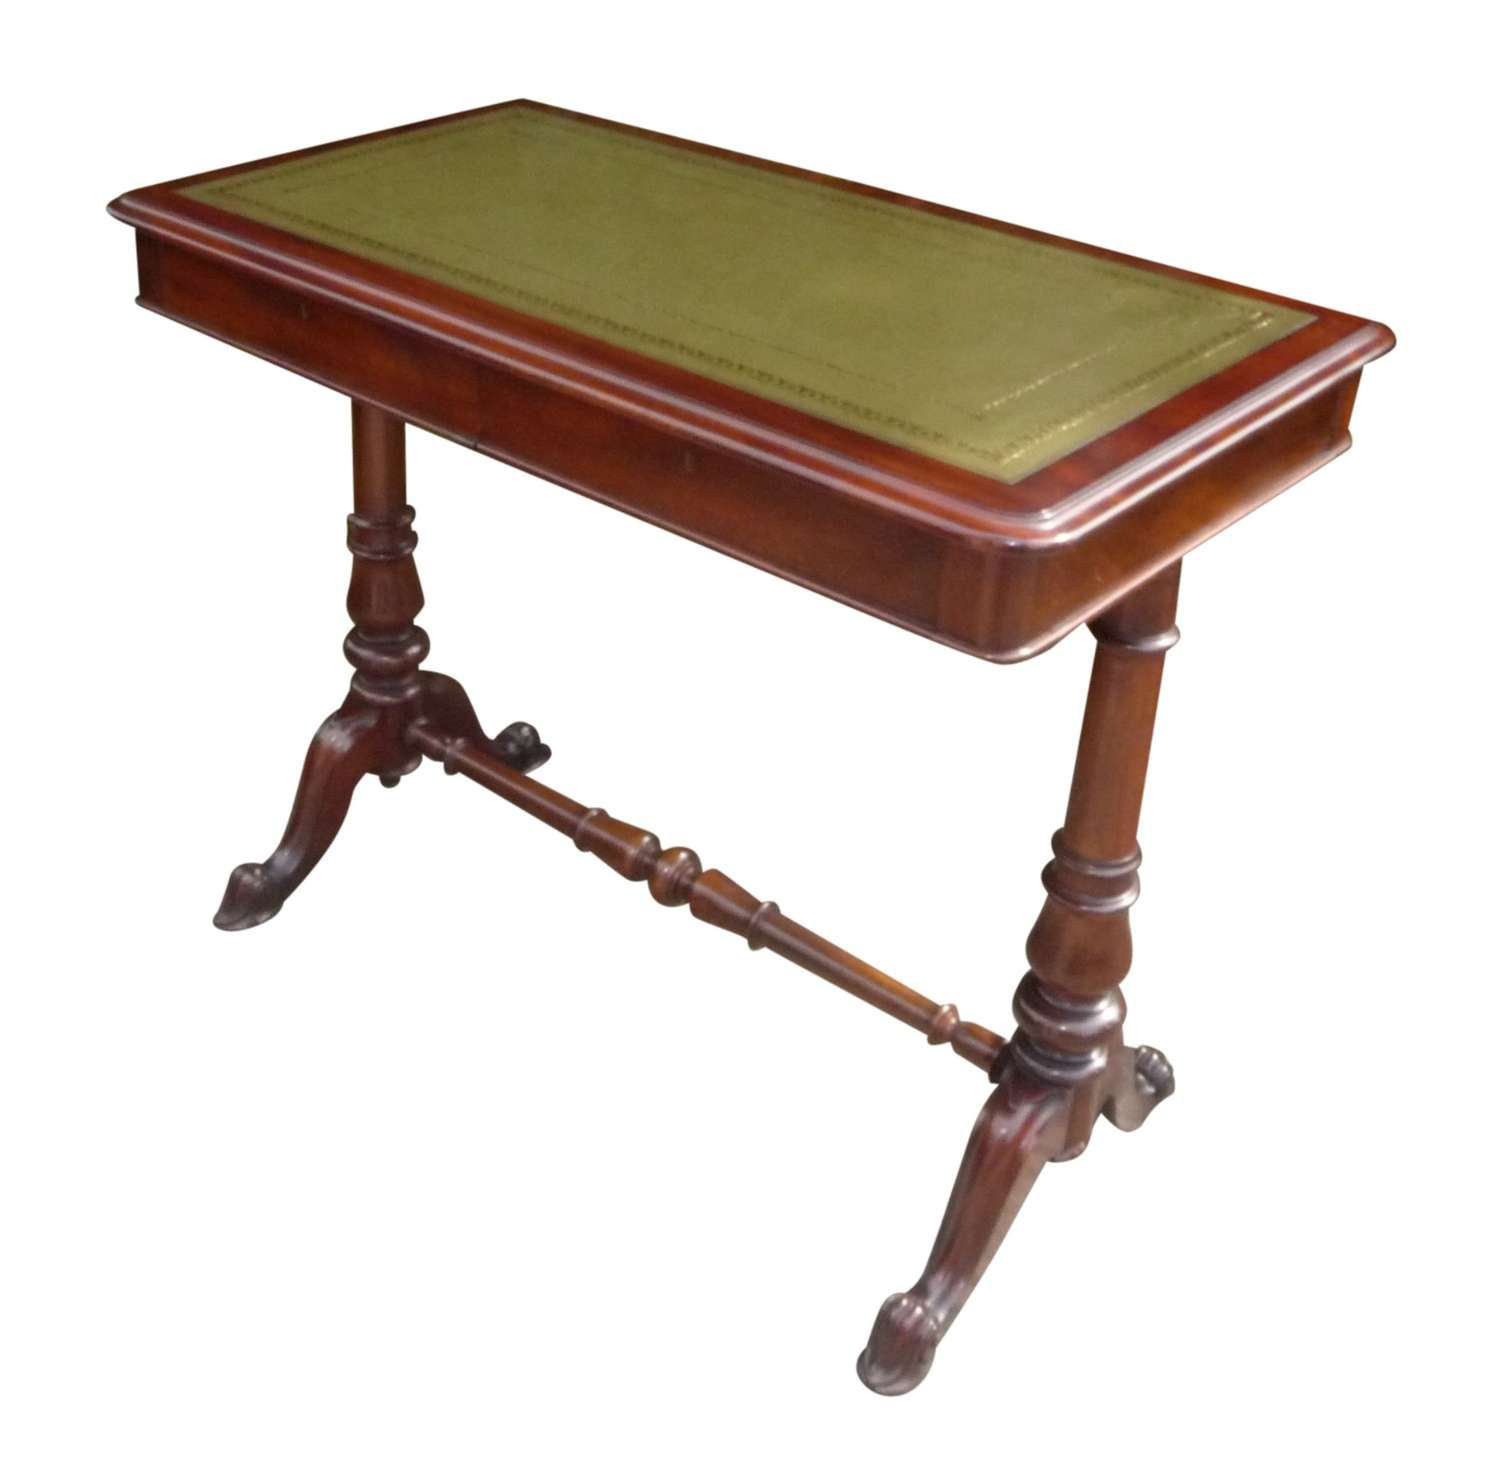 A quality 19th century mahogany ladies desk stamped Johnstone & Jeanes